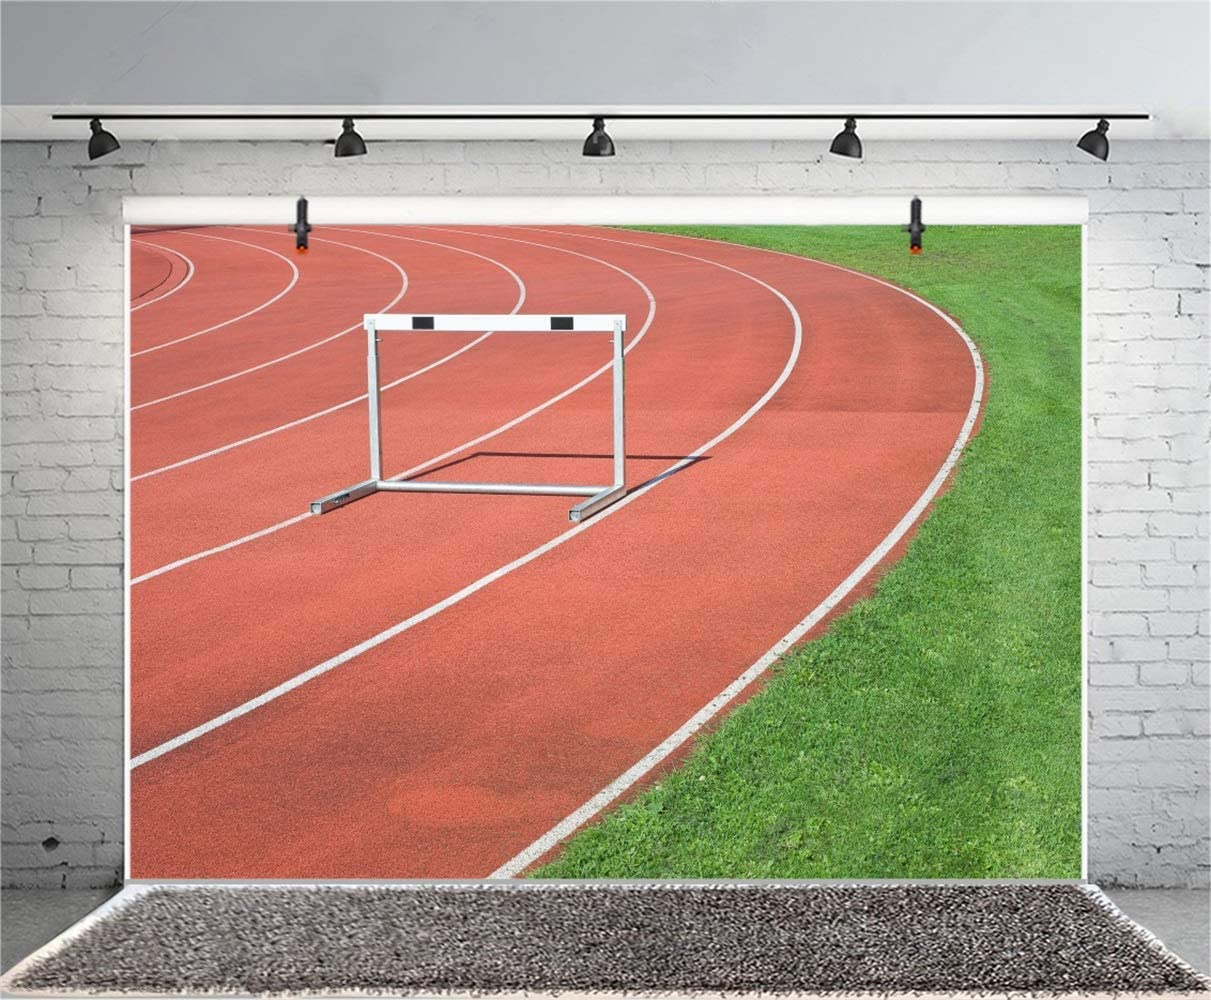 7x5ft Athletics Running Track Backdrop Polyester Photography Background Hurdles Red Runway Grass Field Sports Match Children Kids Adults Portrait Background Photo Video Studio Props